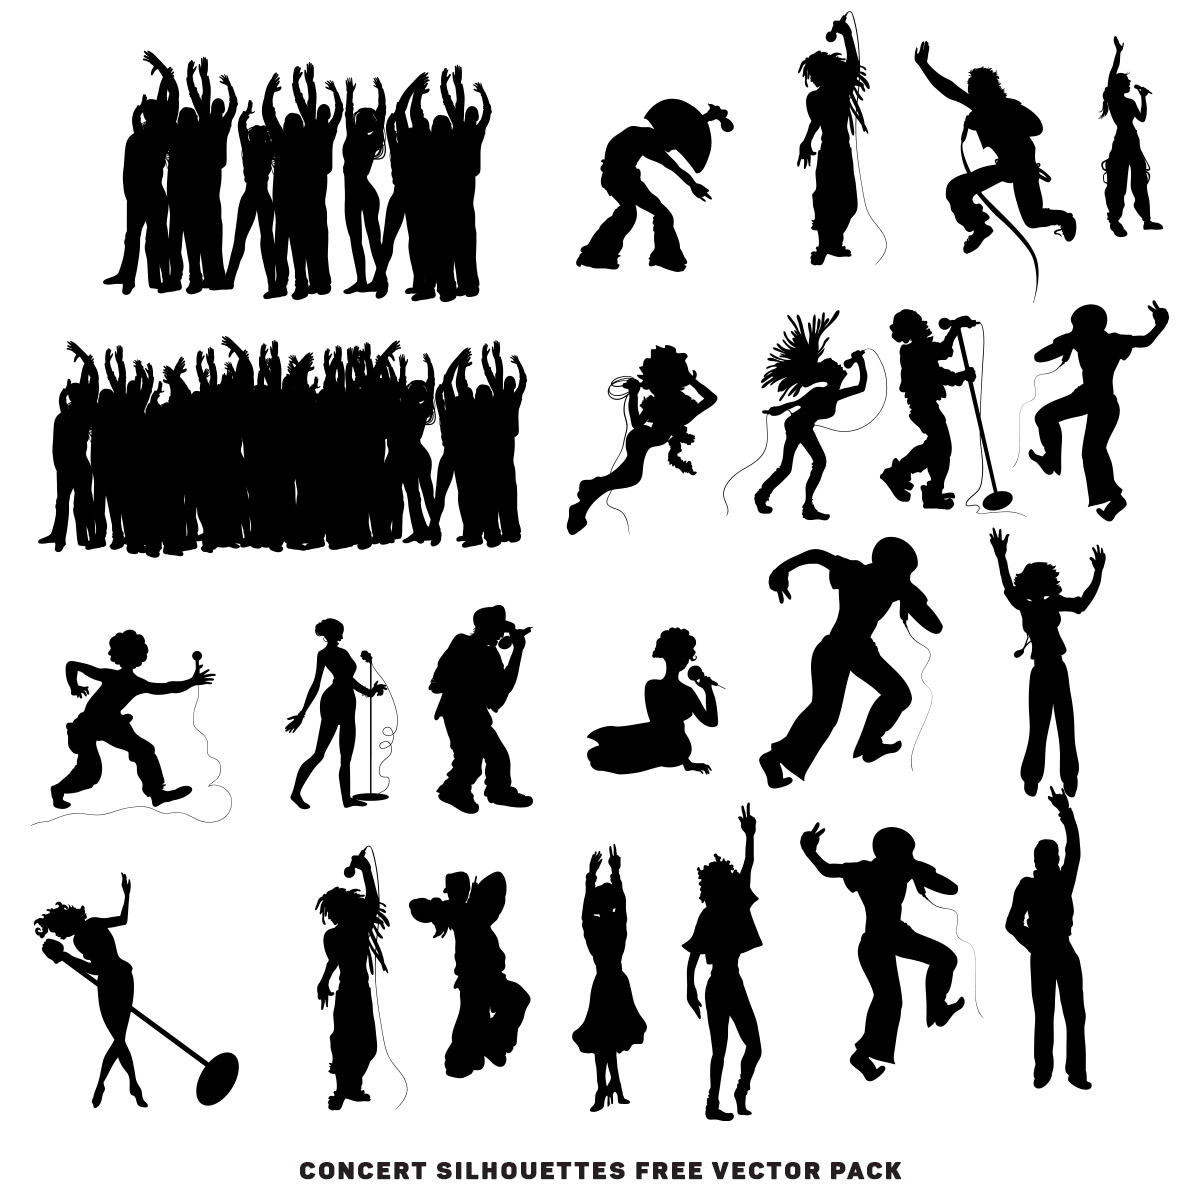 Concert Silhouettes free vector pack | Free download